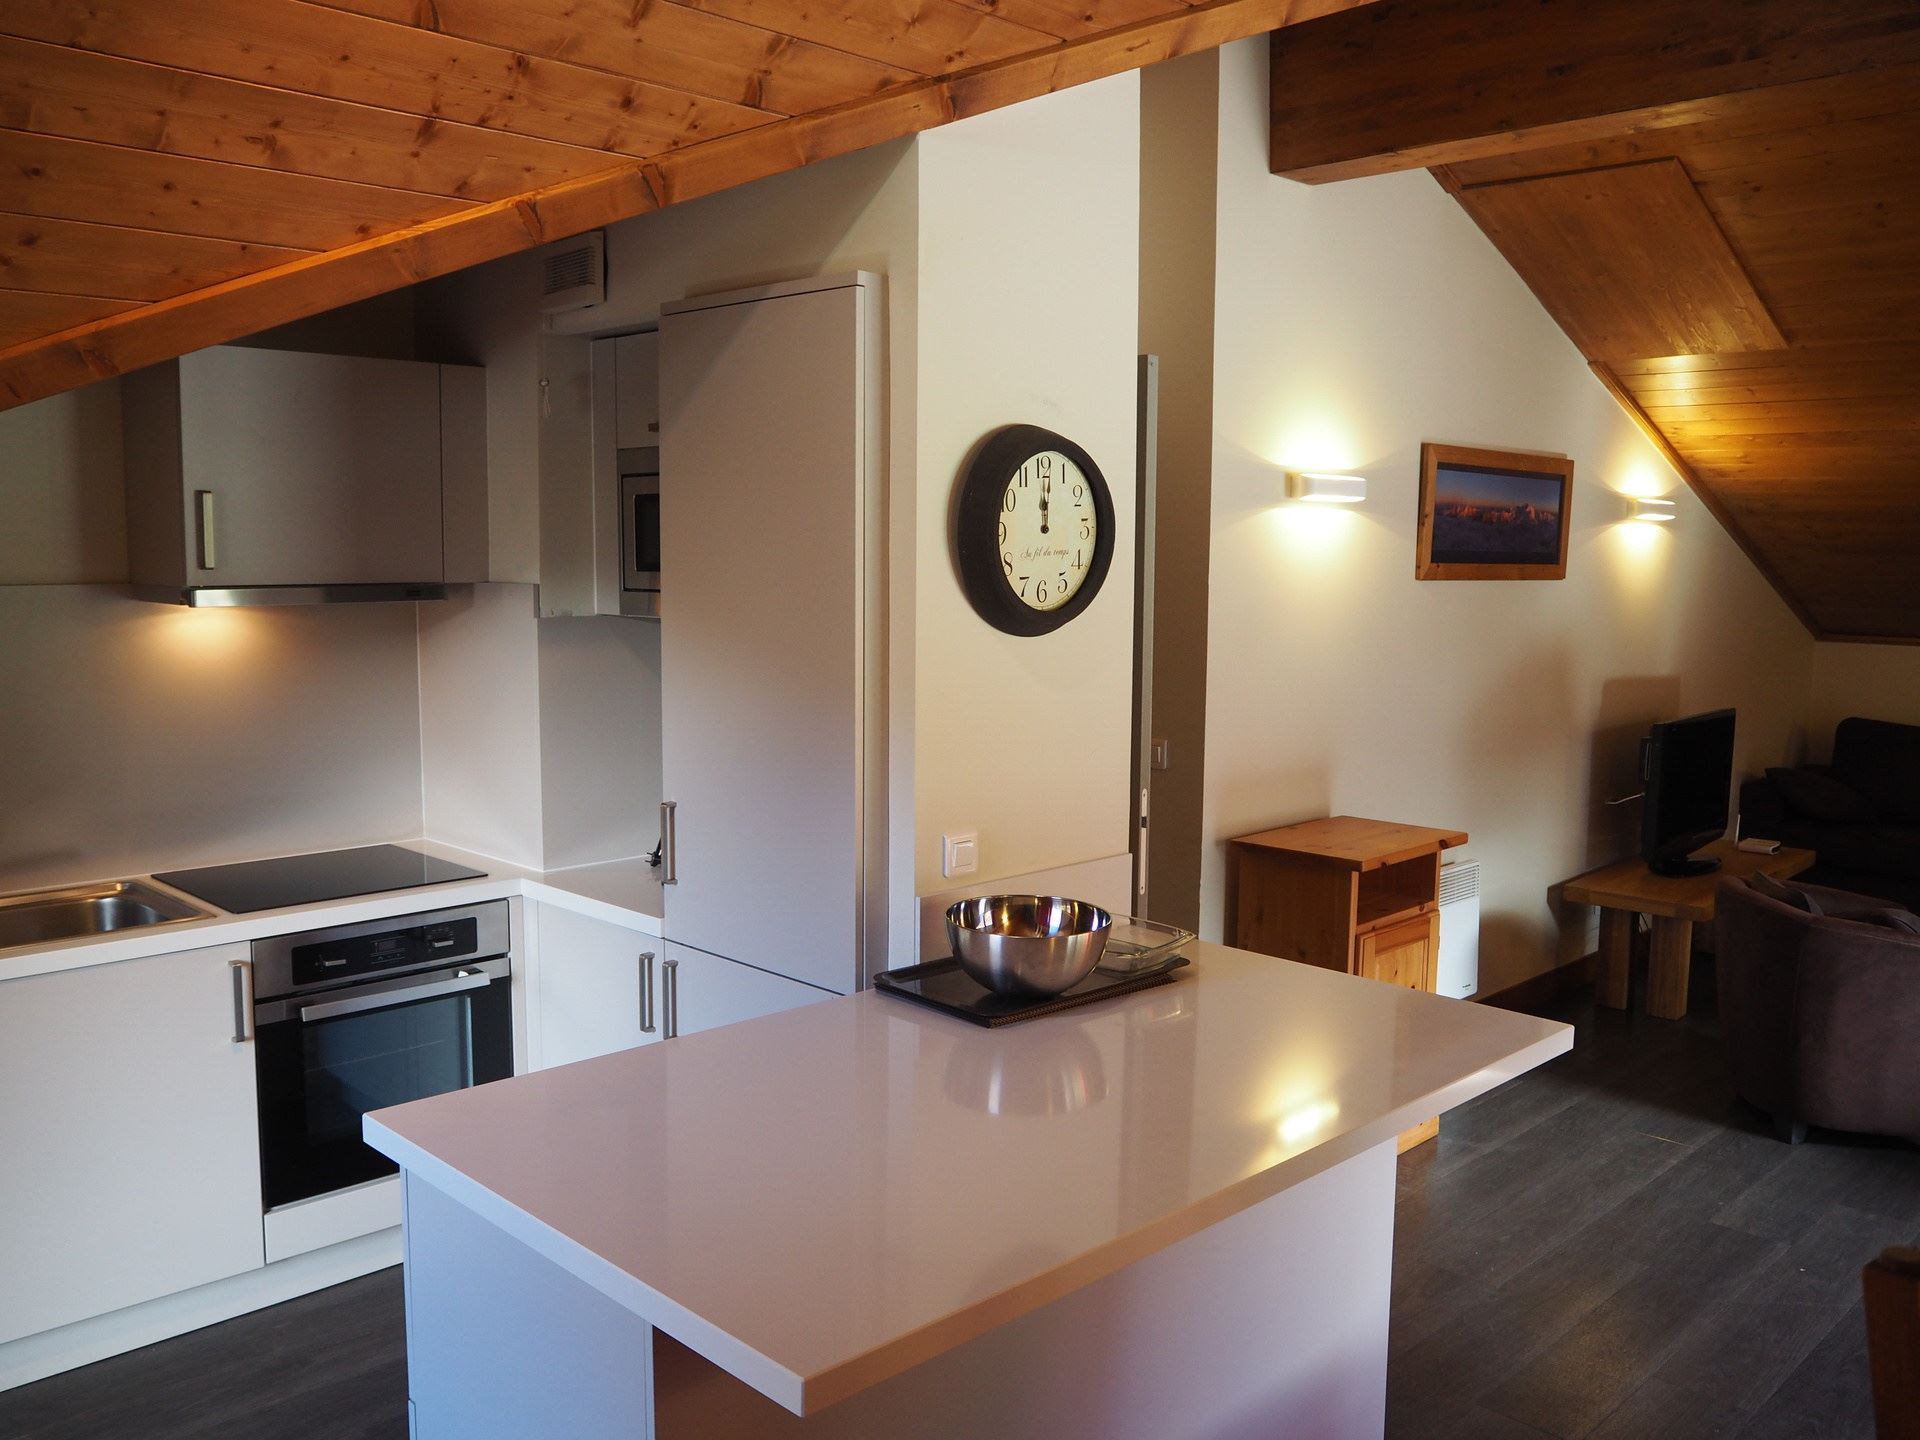 4 Rooms 10 Pers ski-in ski-out / LES CRISTAUX 28